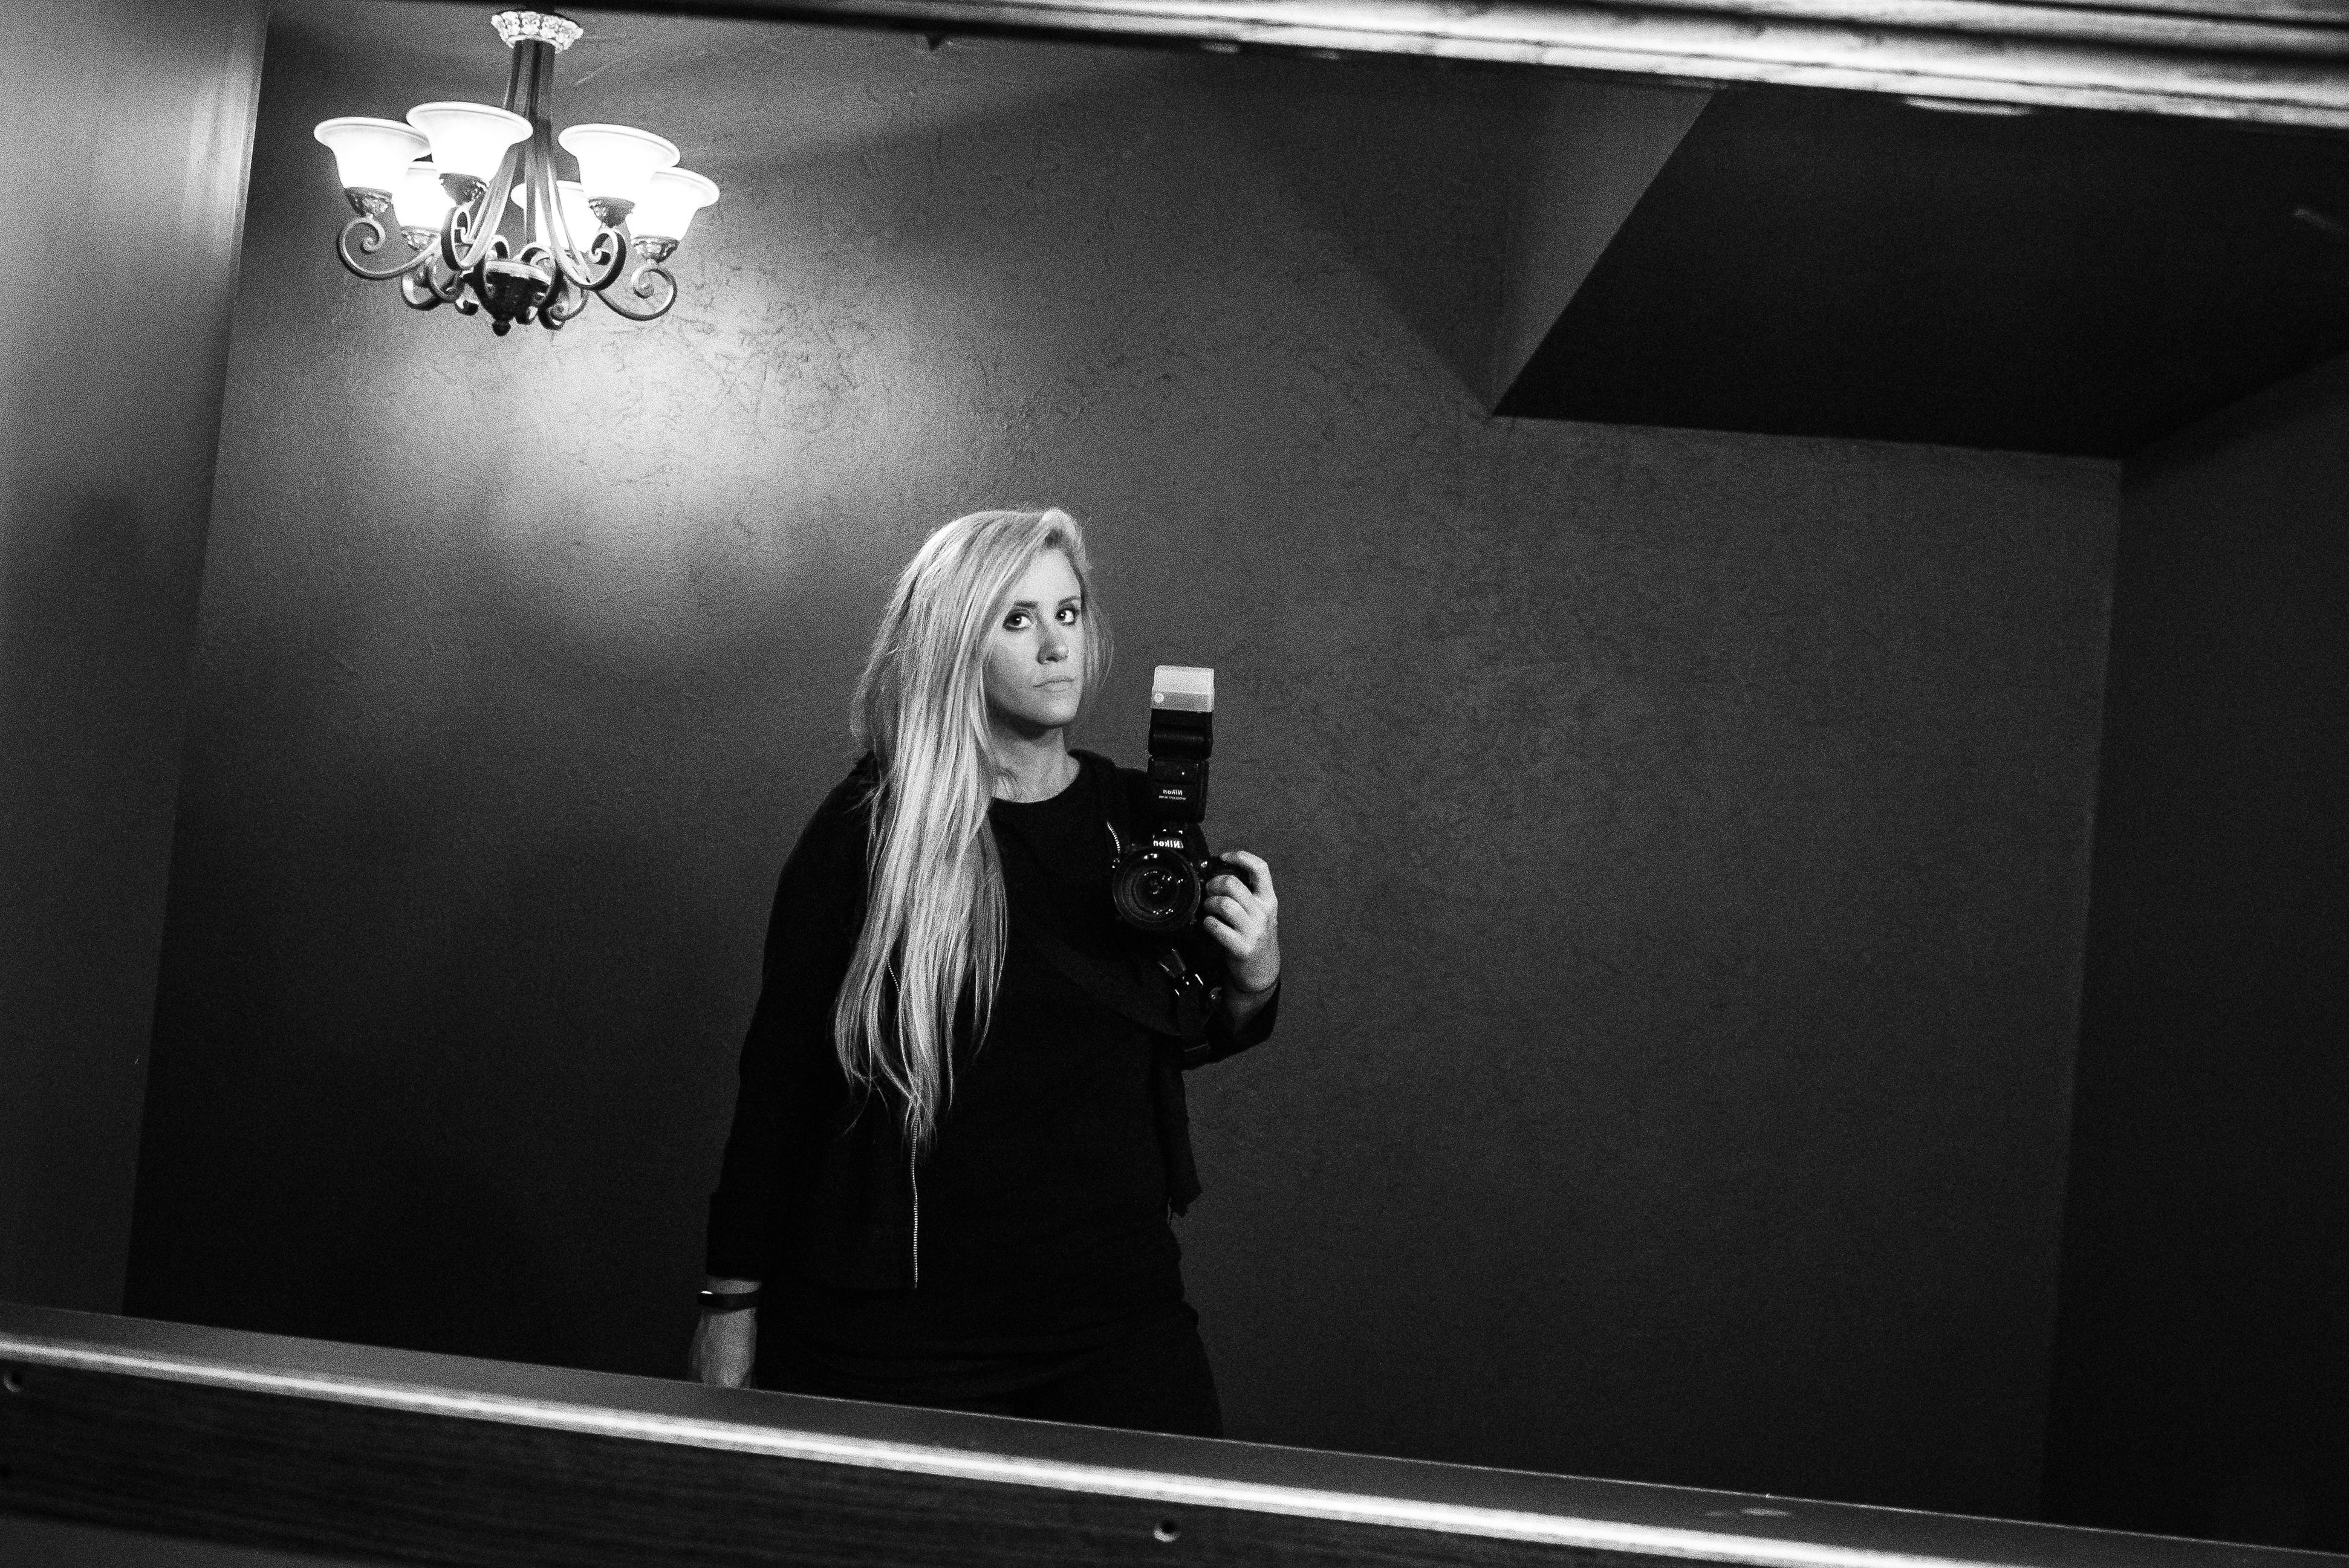 Brianna Griepentrog had so much work as a concert photographer for the Pabst Theater Group, the Rave and Summerfest that she quit her day job in late February. But then the coronavirus pandemic hit and now she's out of work.